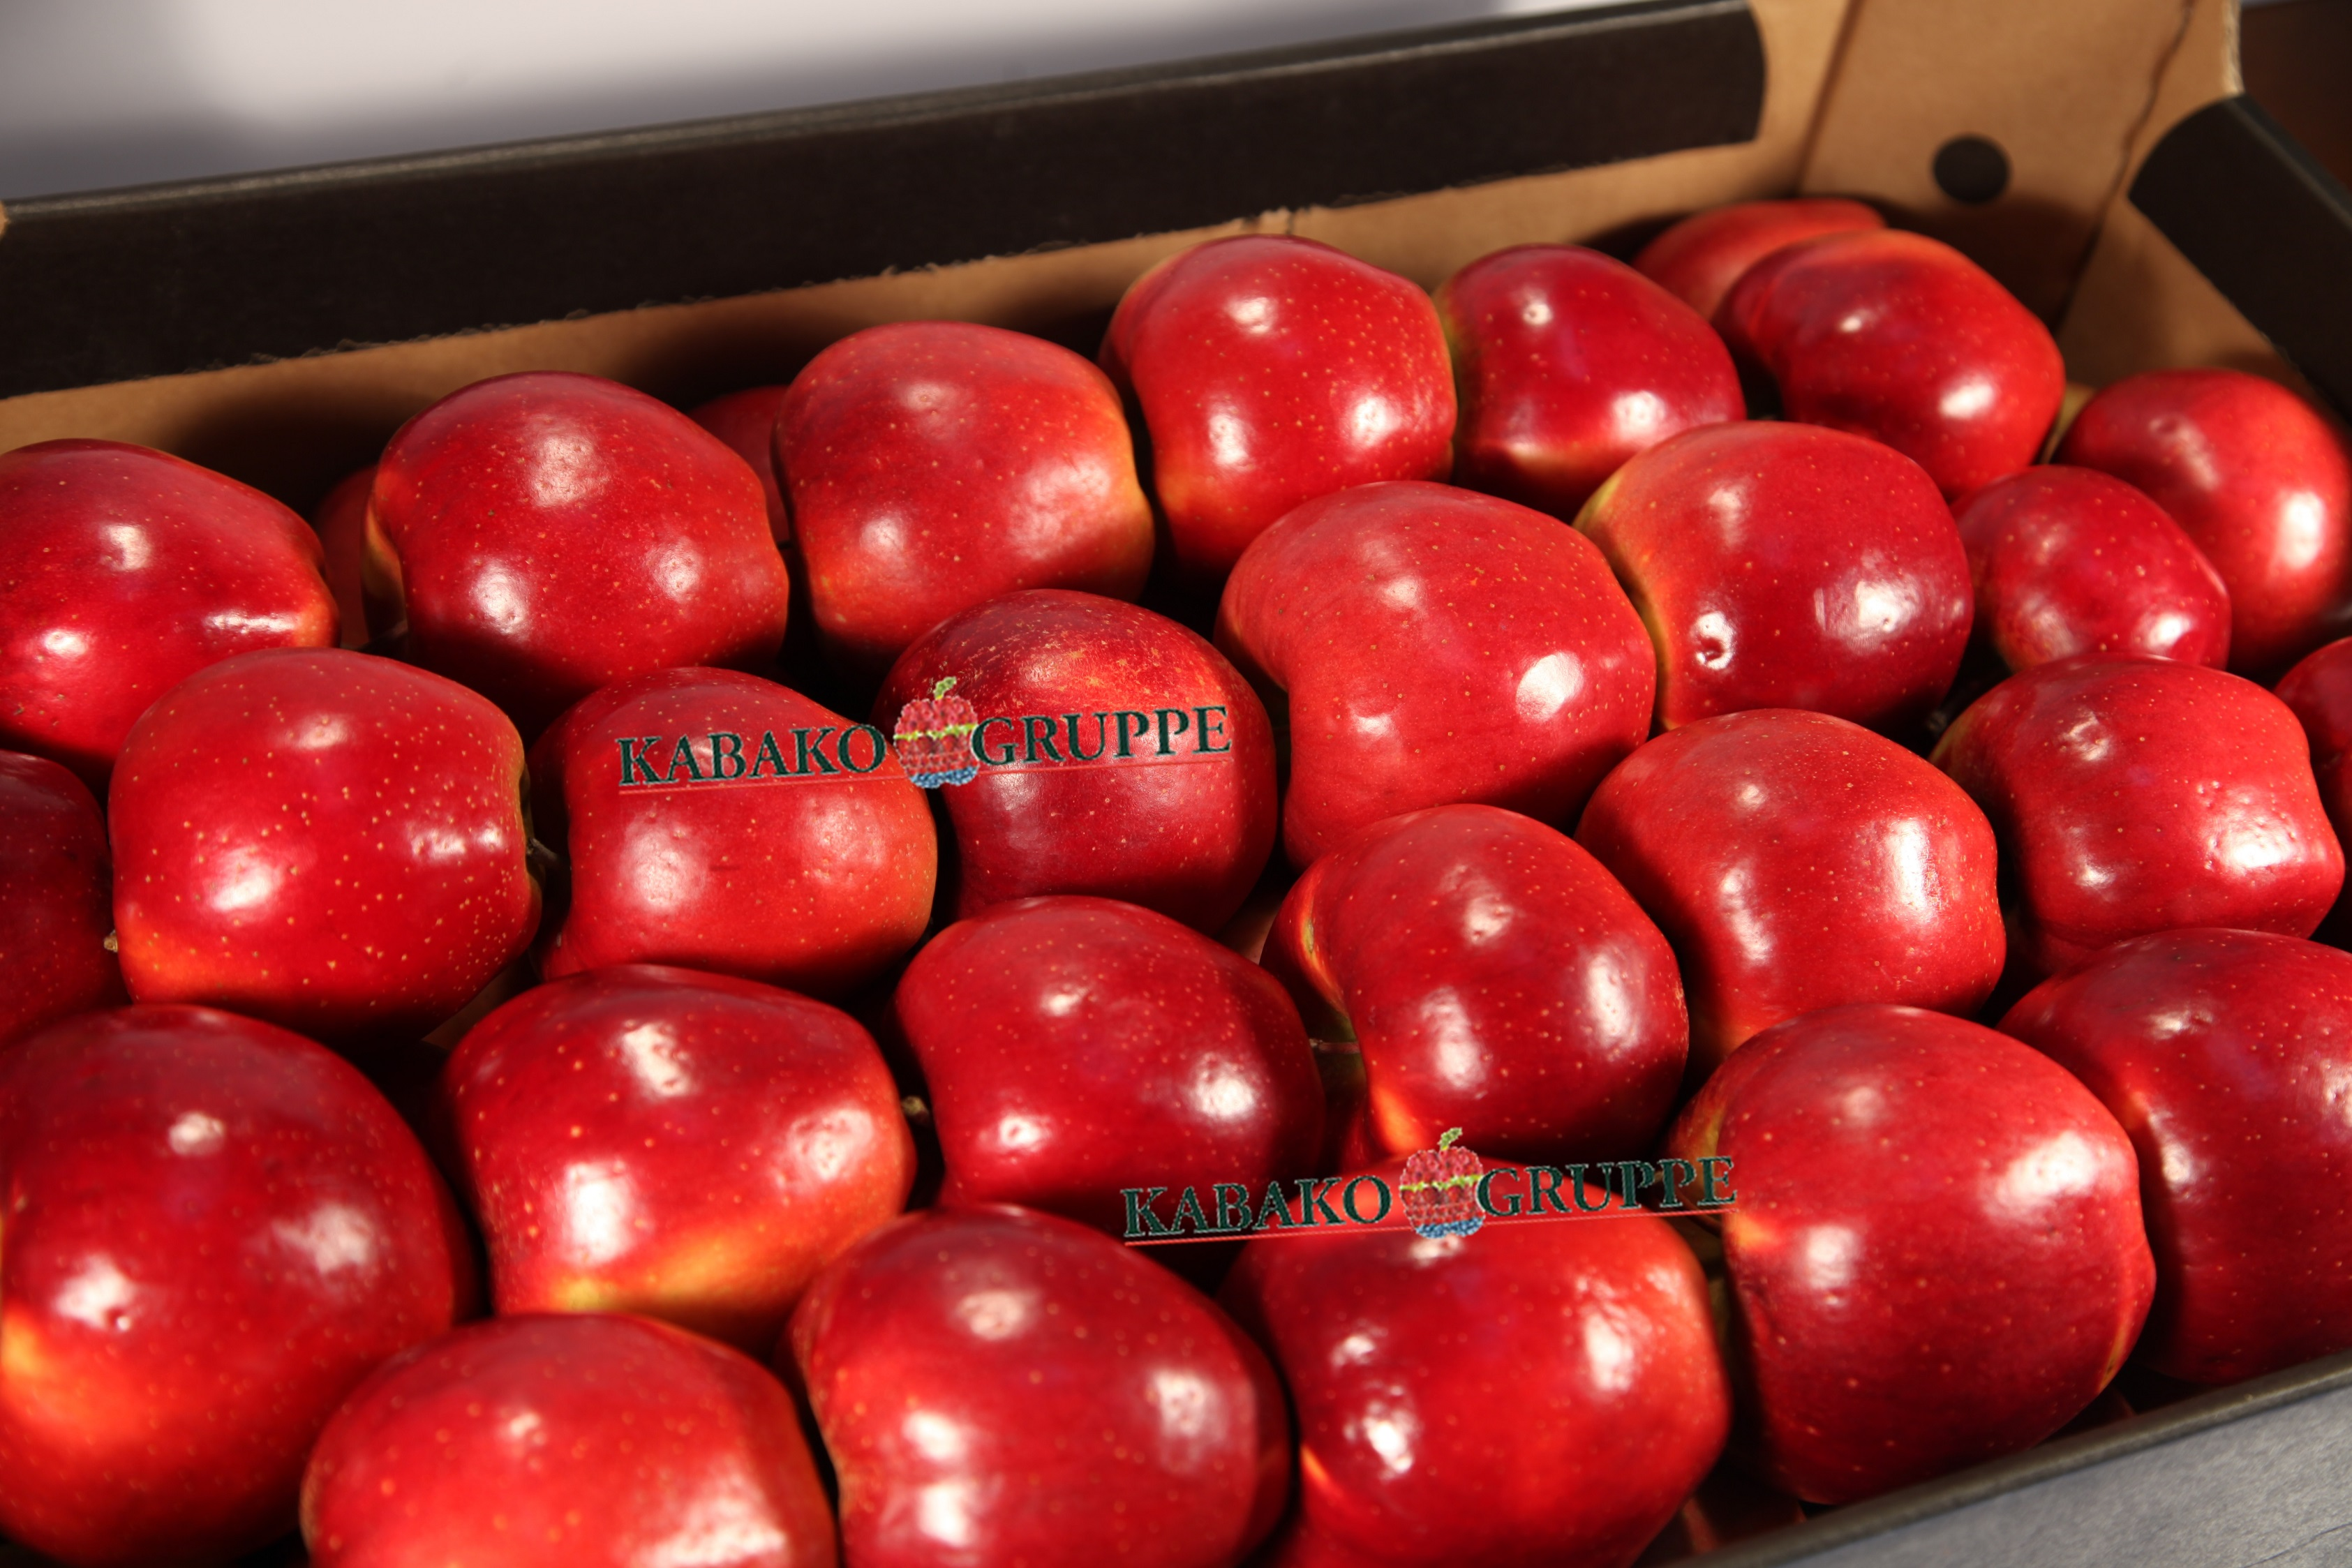 Frozen (IQF) Apples 74